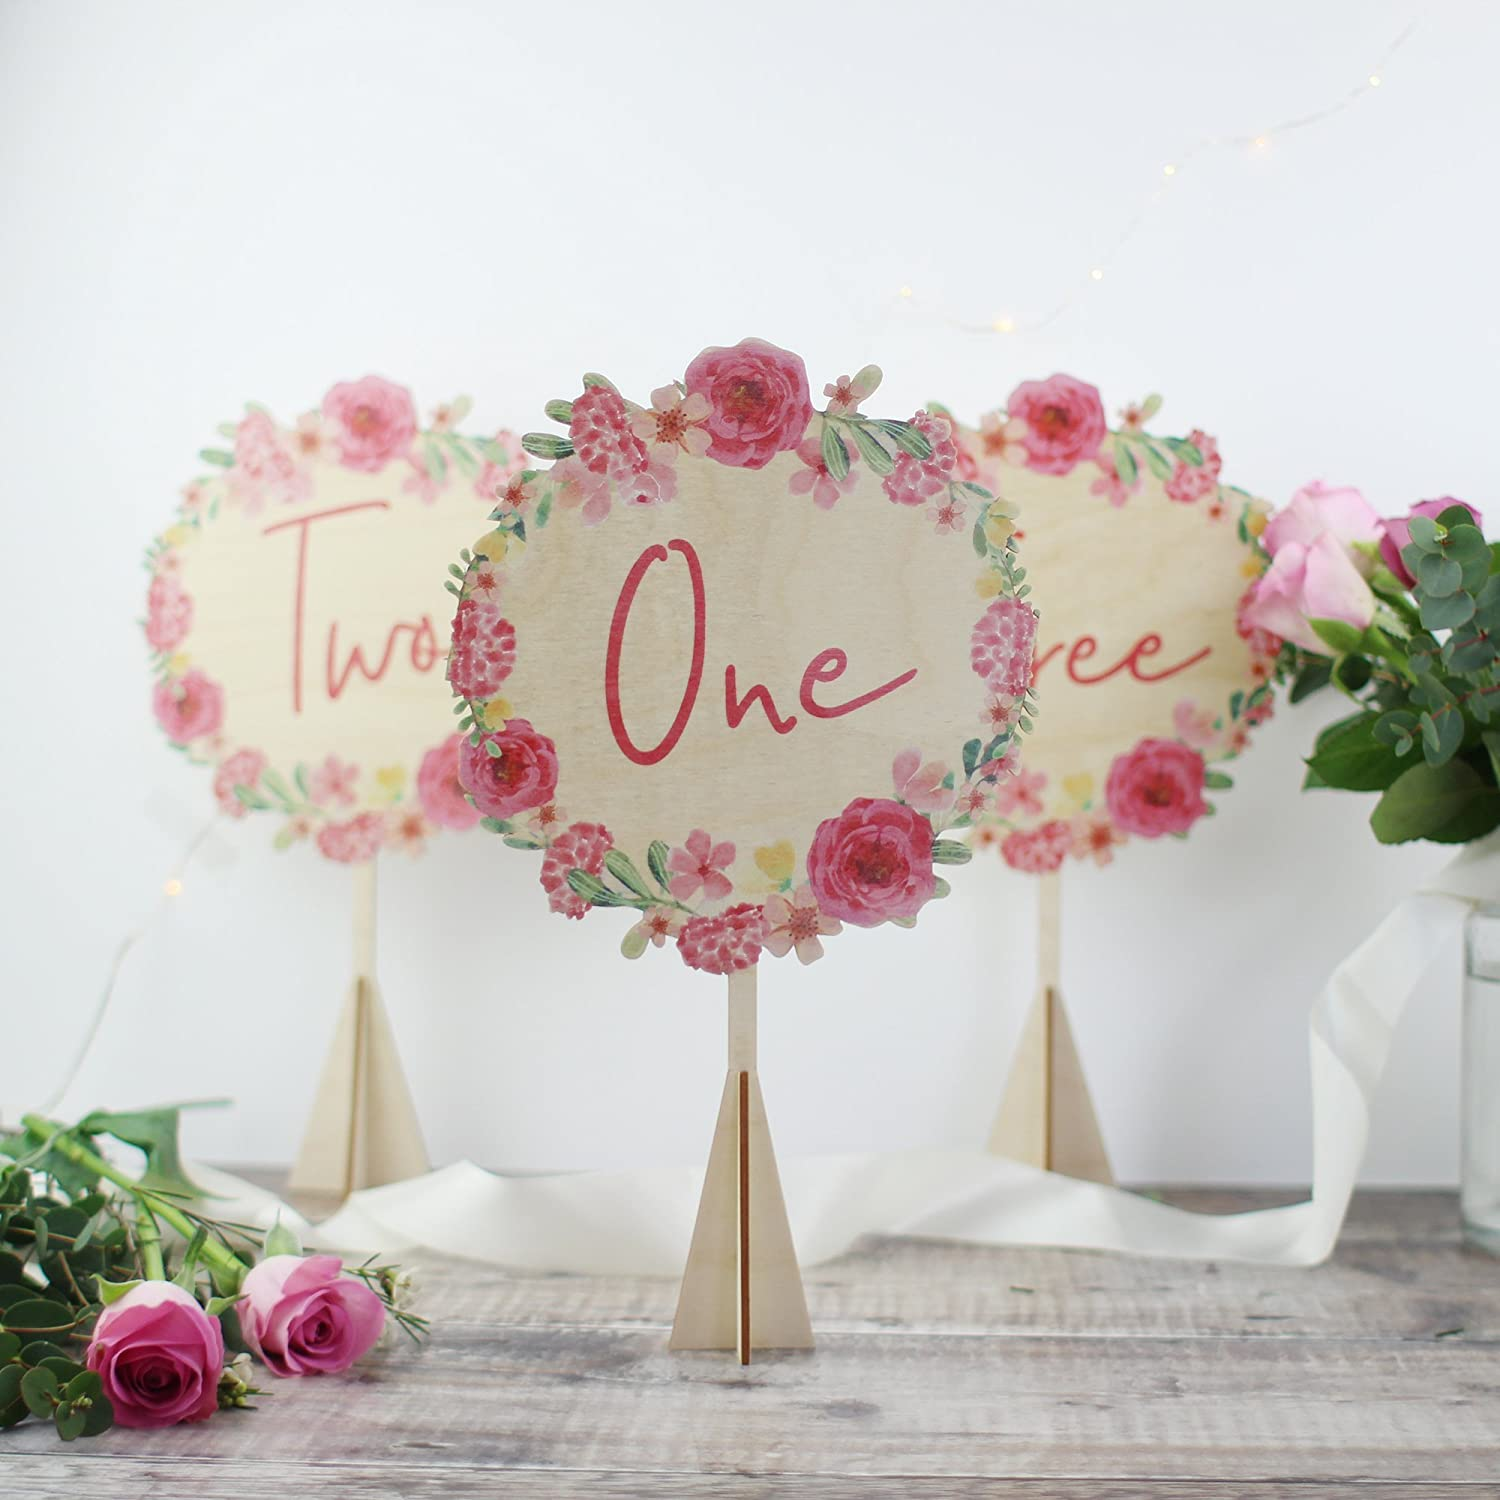 Wedding Table Number - Pink Floral Table Number - Wooden Table Number - Rustic Wedding - Pink Roses - Pink Wedding Table Numbers - Table